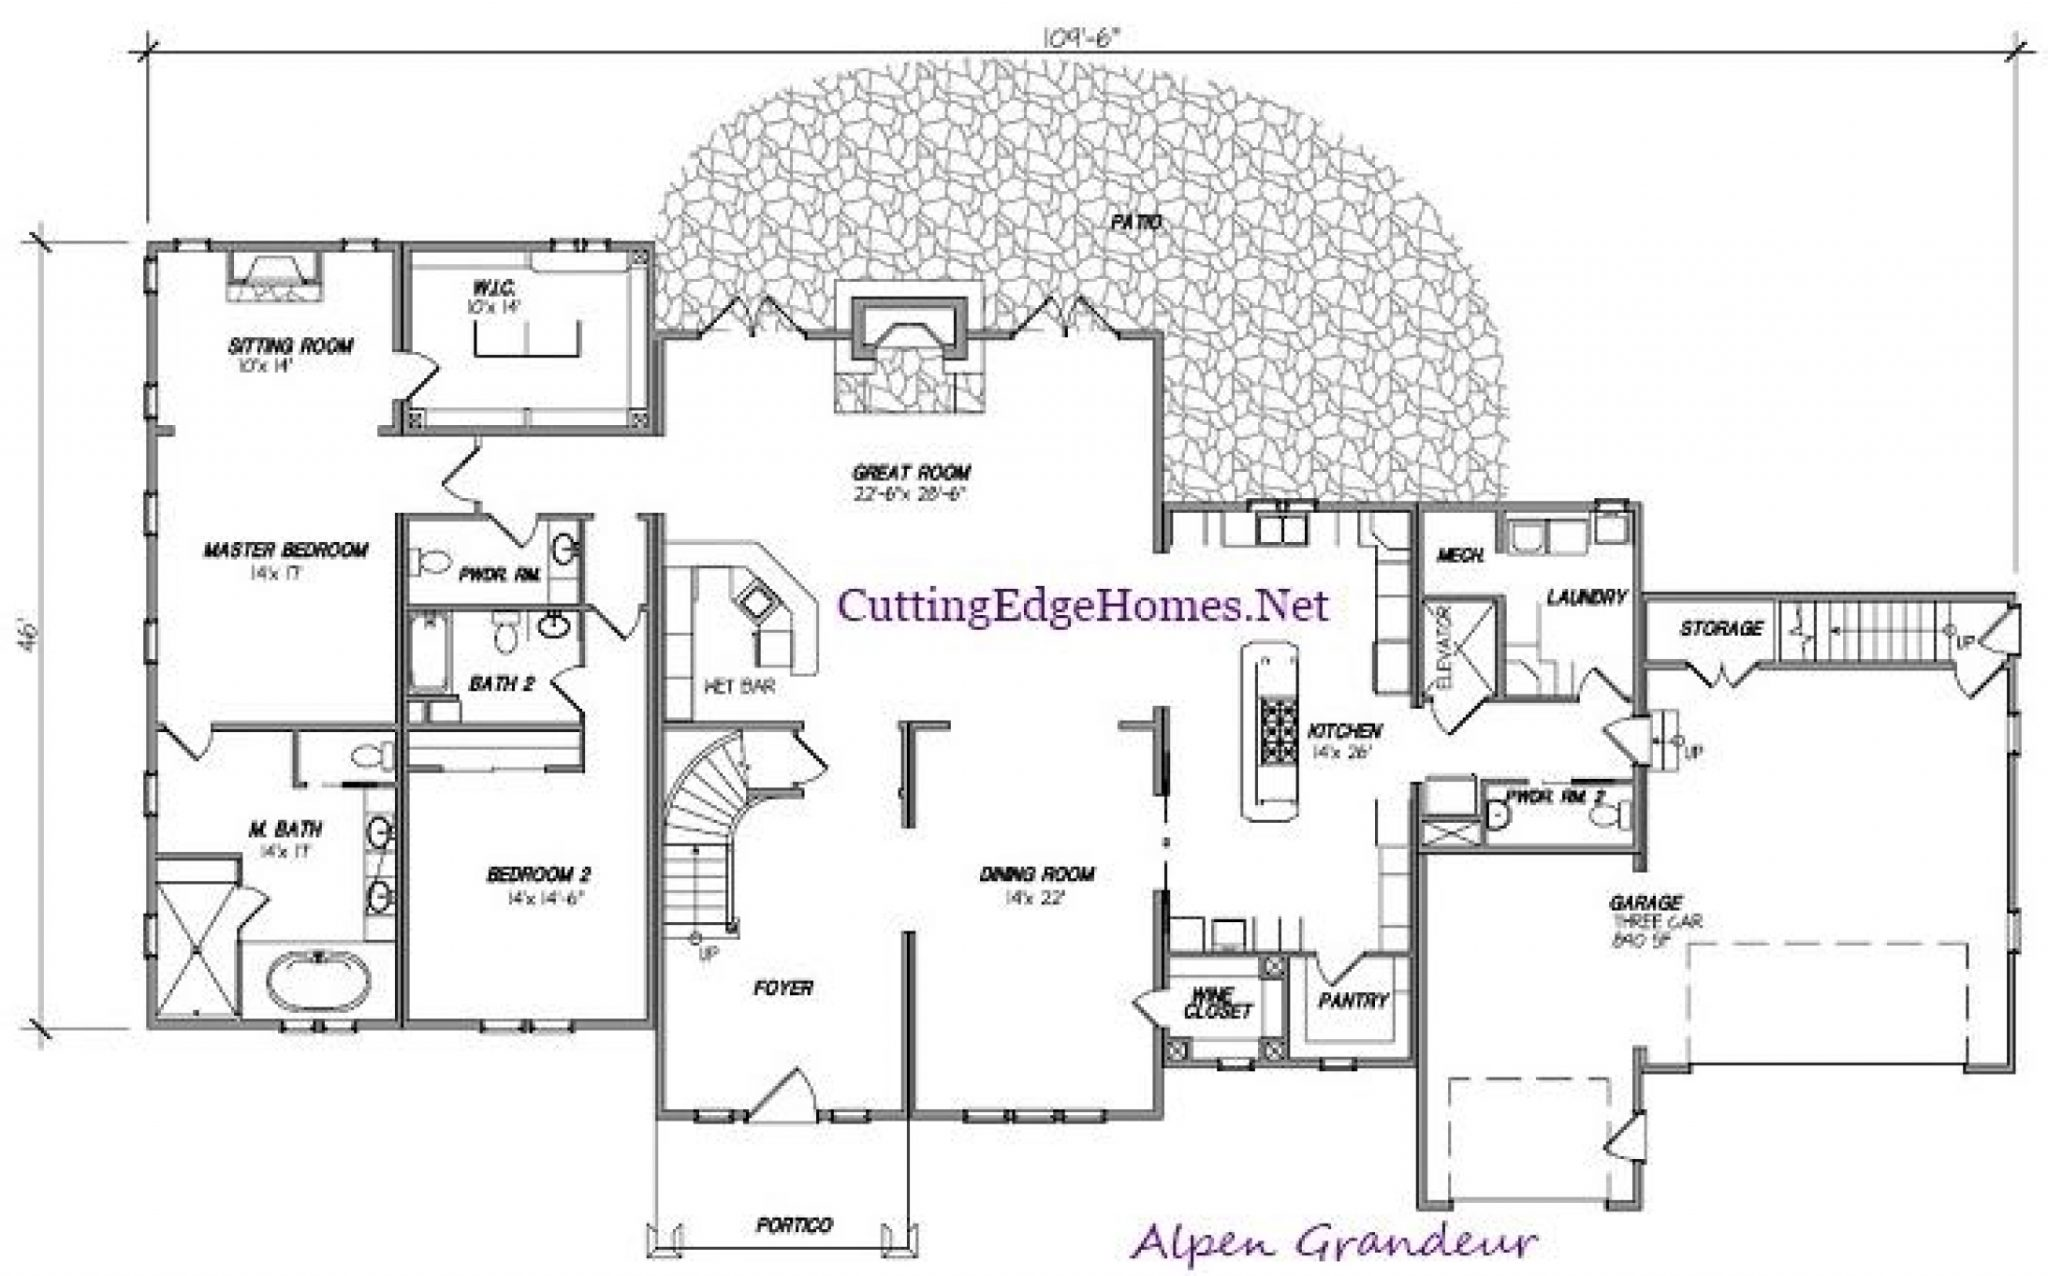 Floor Plan And Elevation Pdf : Modular homes the alpen grandeur floor plan and elevation pdf